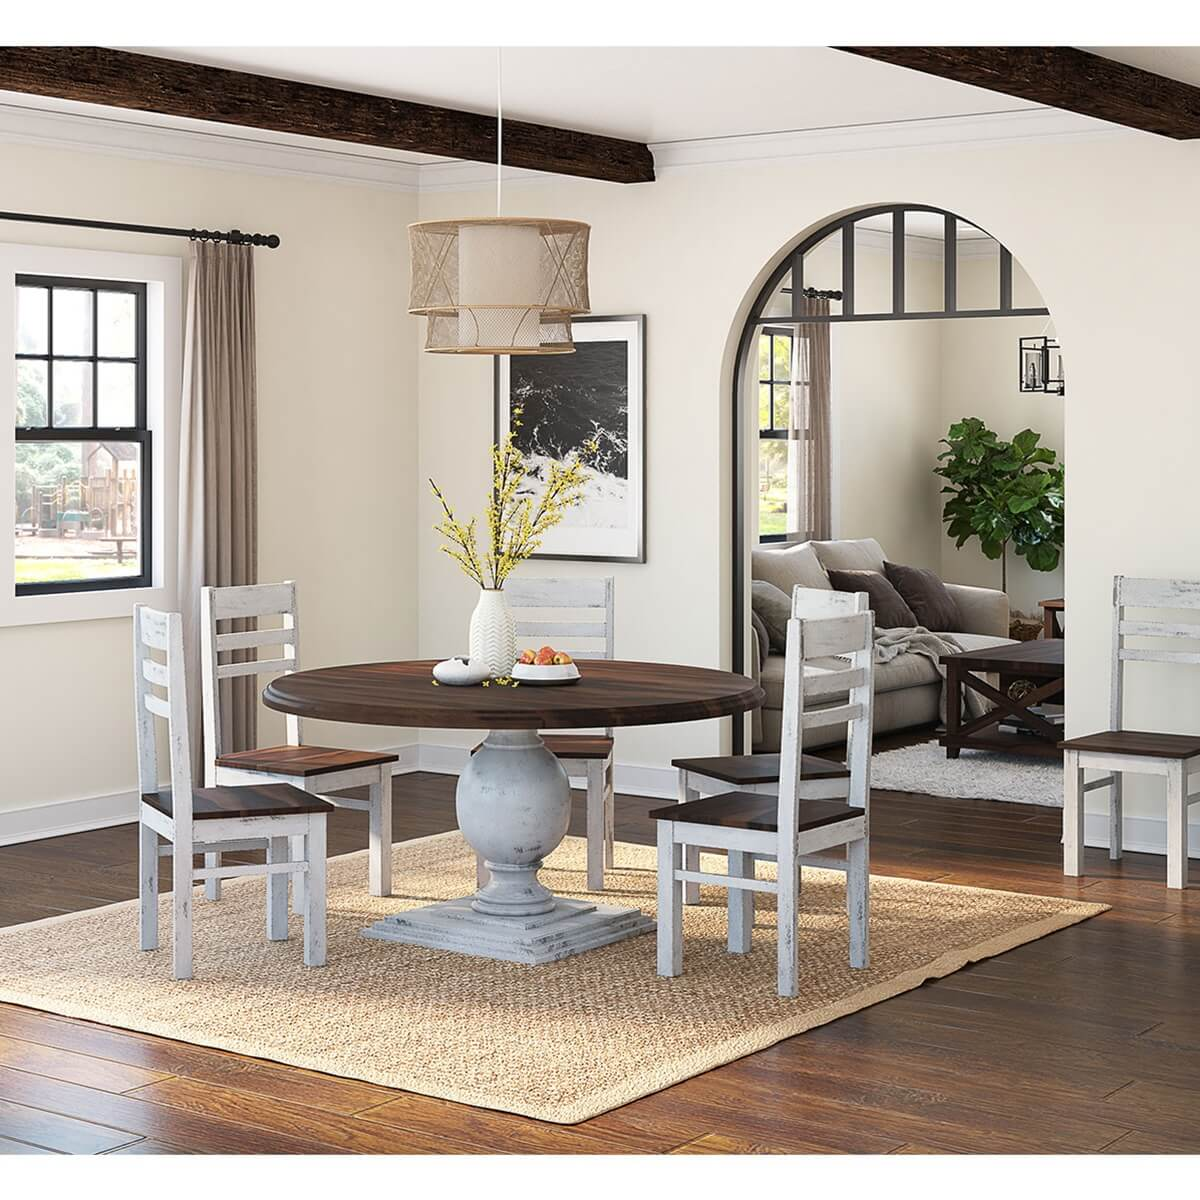 Illinois modern two tone large round dining table with 8 for Modern large round dining table